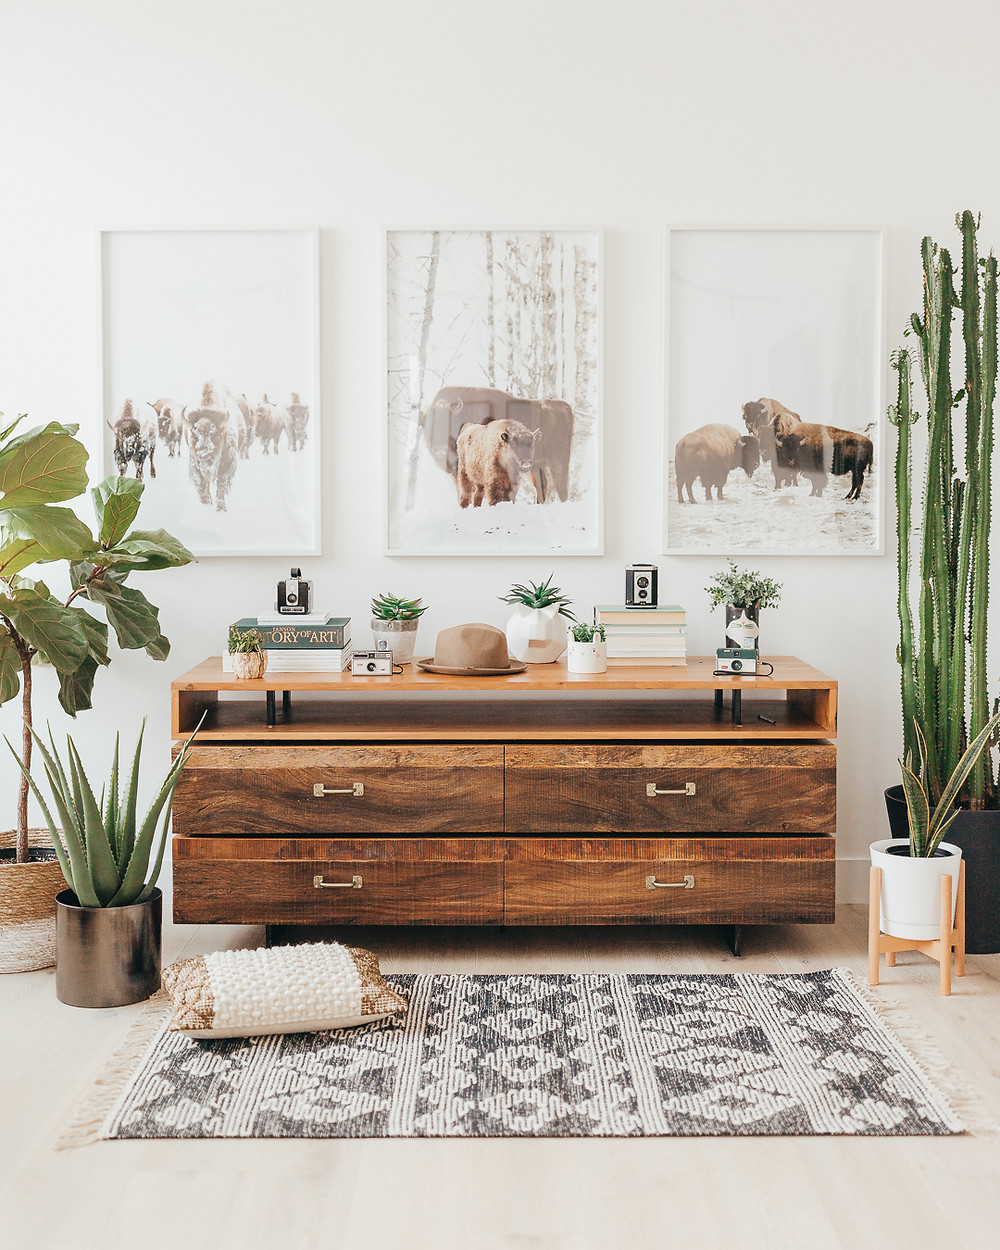 Wood console table under three framed pictures of bison fiddle leaf plant in woven basket aloe plant in pot on floor cactus in corner snake plant in white pot with wood stand on floor patterned area rug natural wood floors